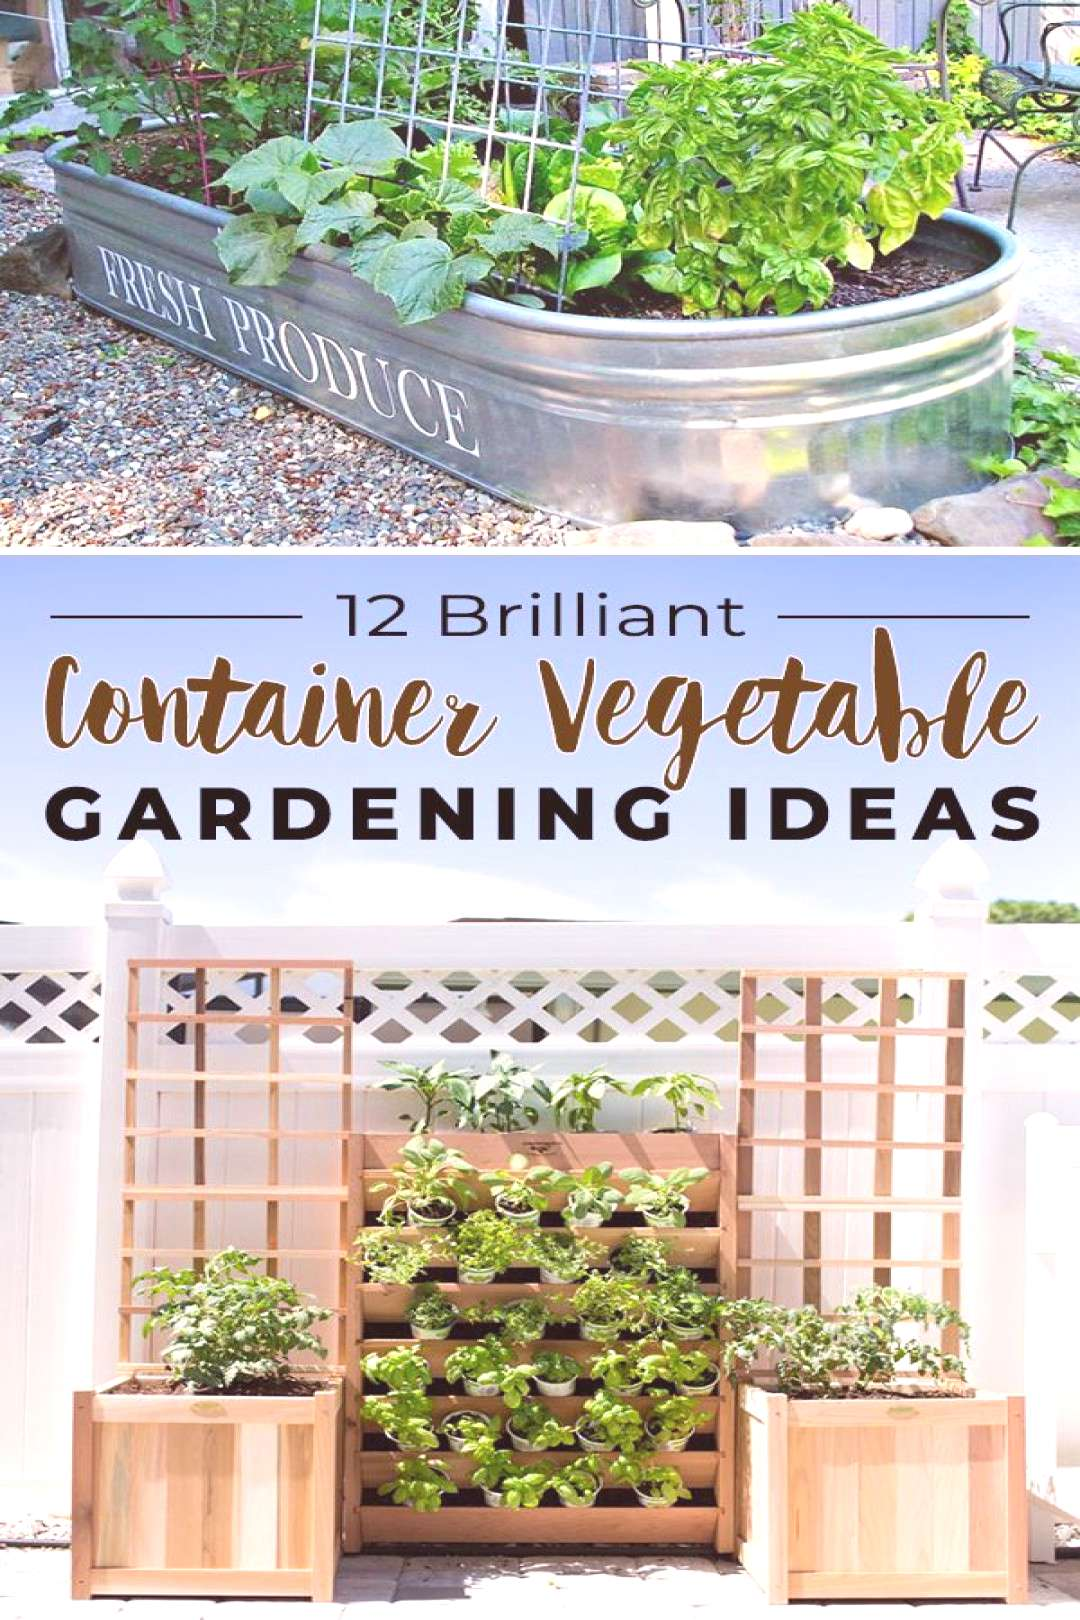 12 Brilliant Container Vegetable Gardening Ideas!,